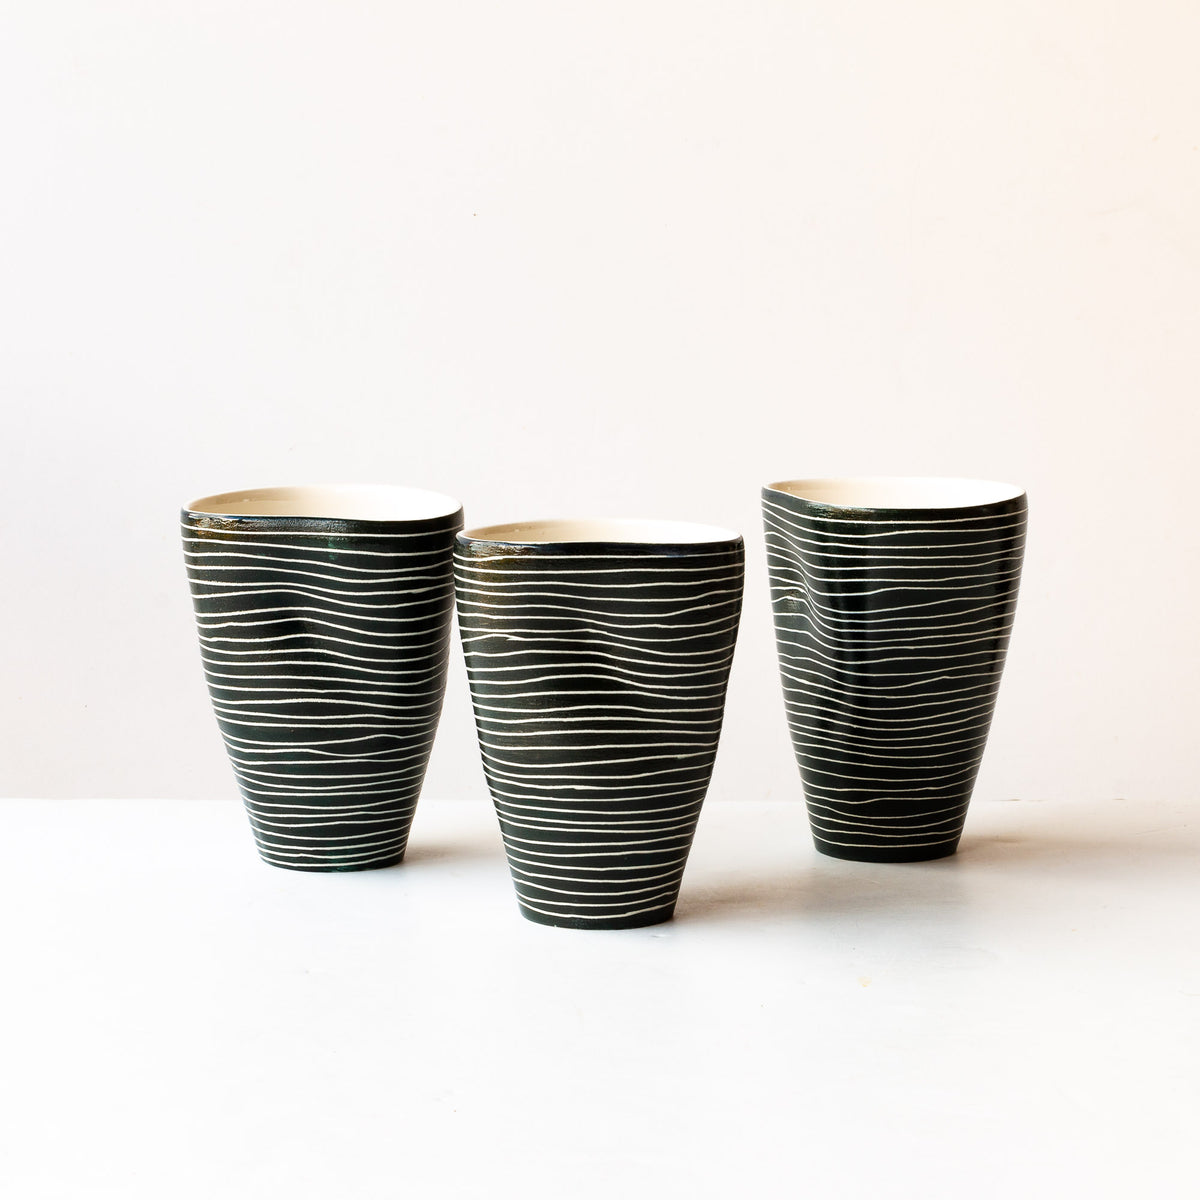 Three Striped Large Black & Wwite Porcelain Tumblers - Sold by Chic & Basta